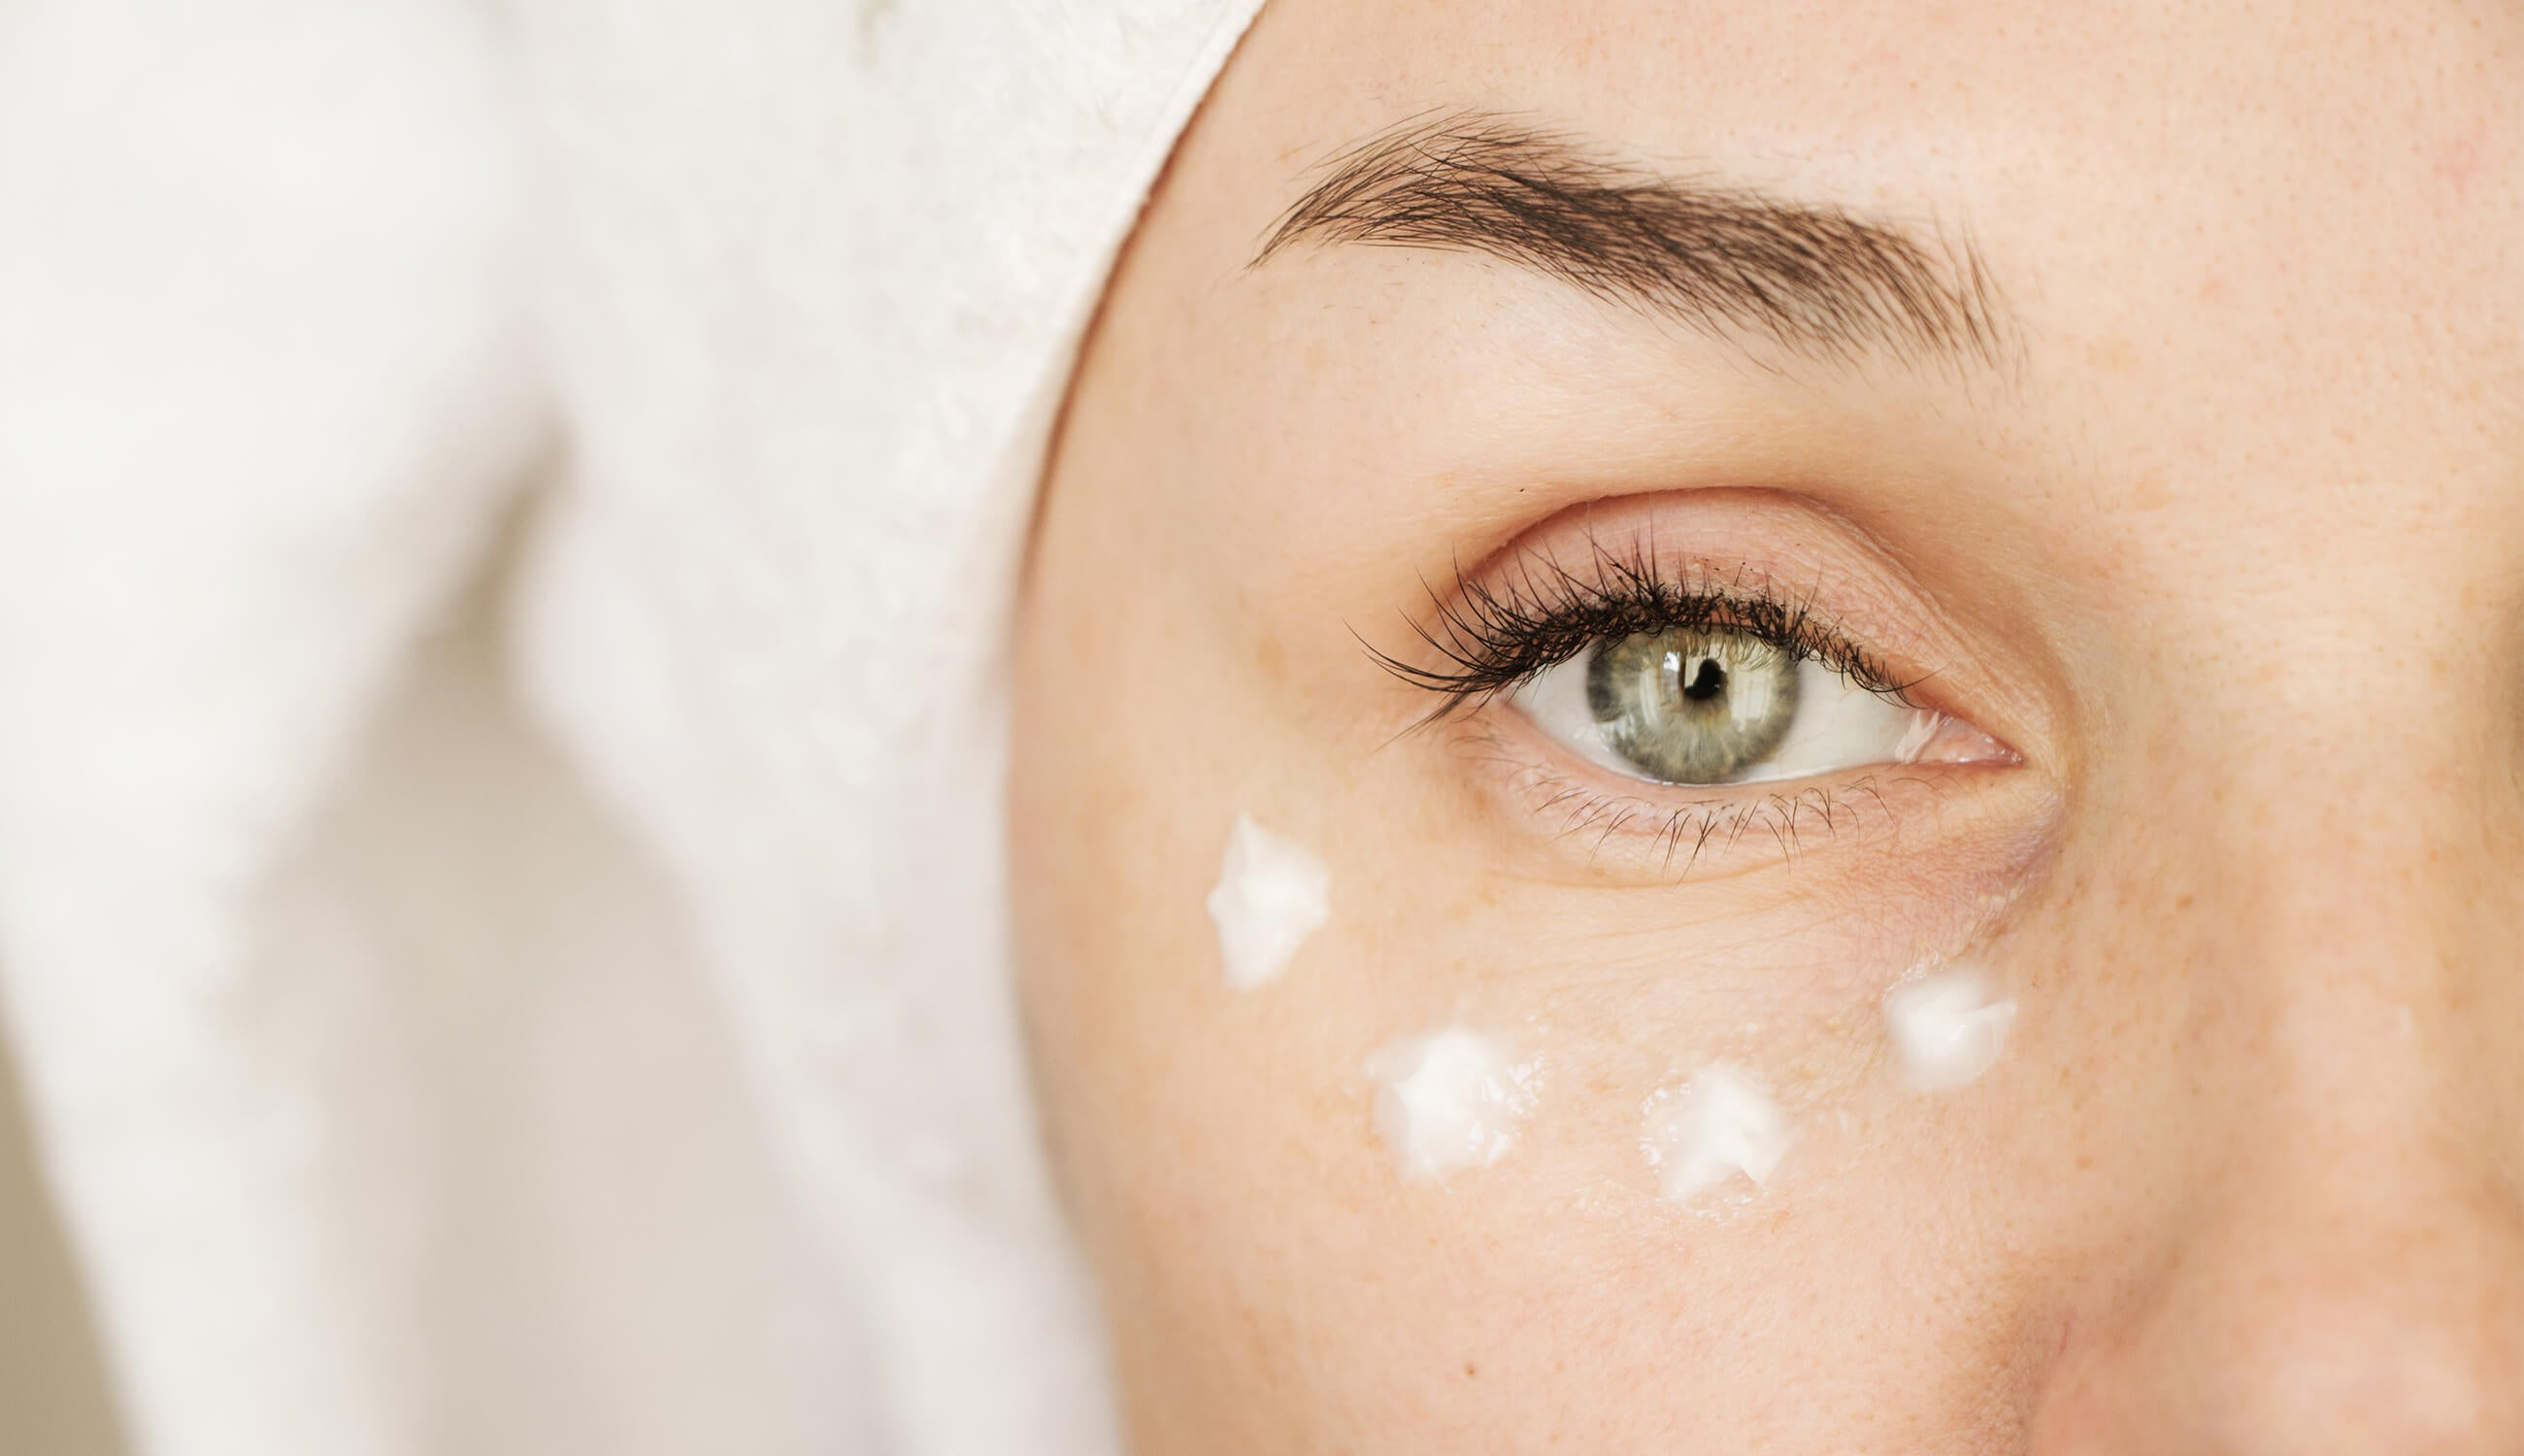 woman puts cream on her face.jpg